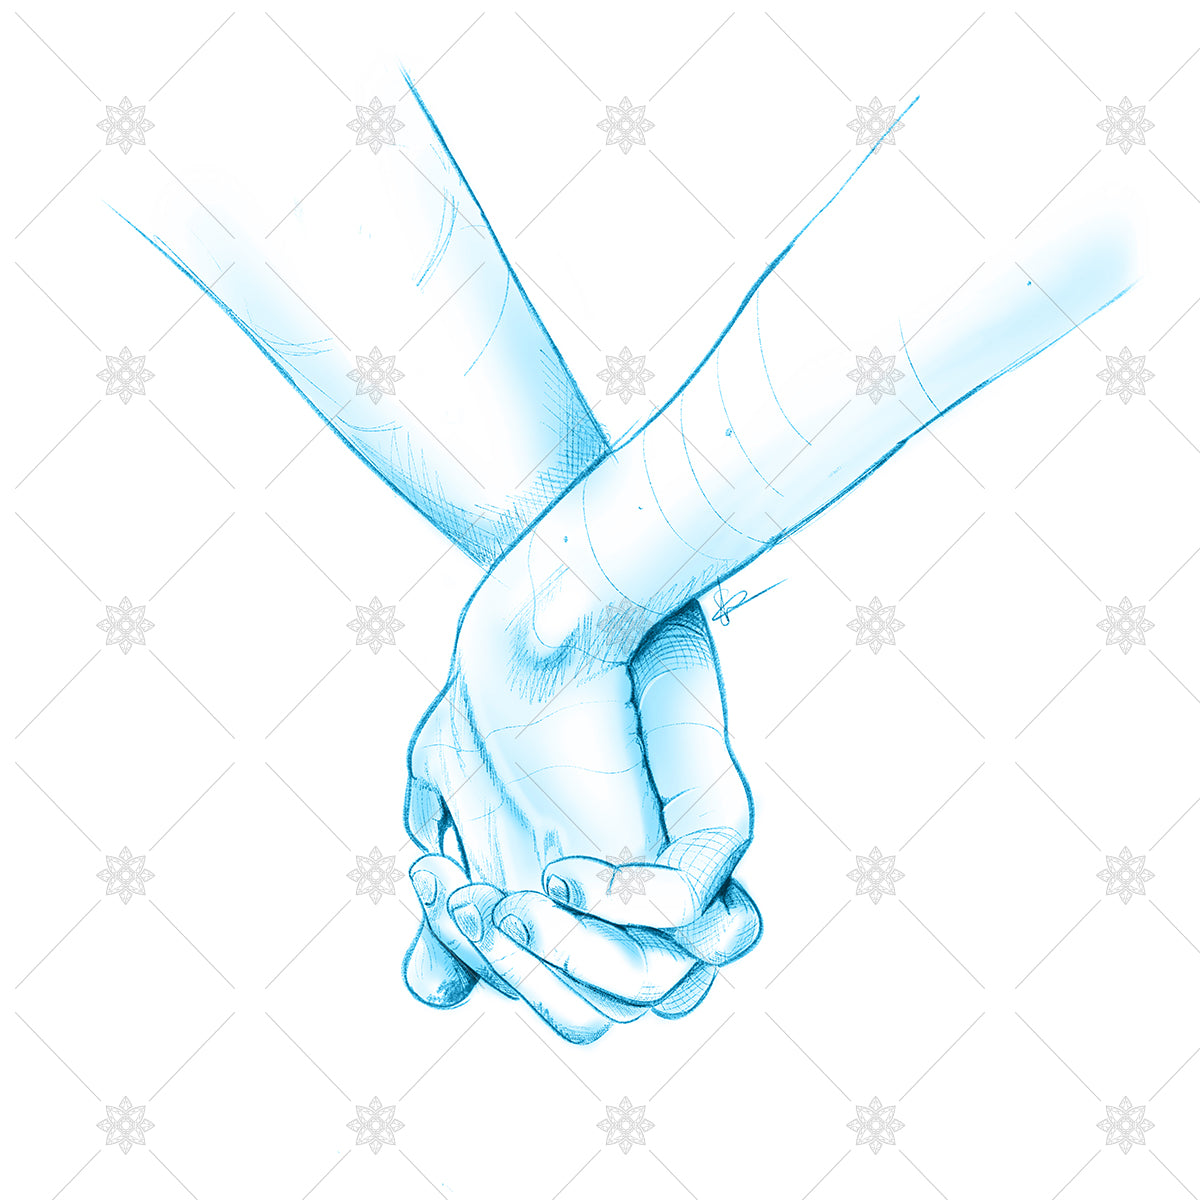 couple holding hands blue pencil sketch